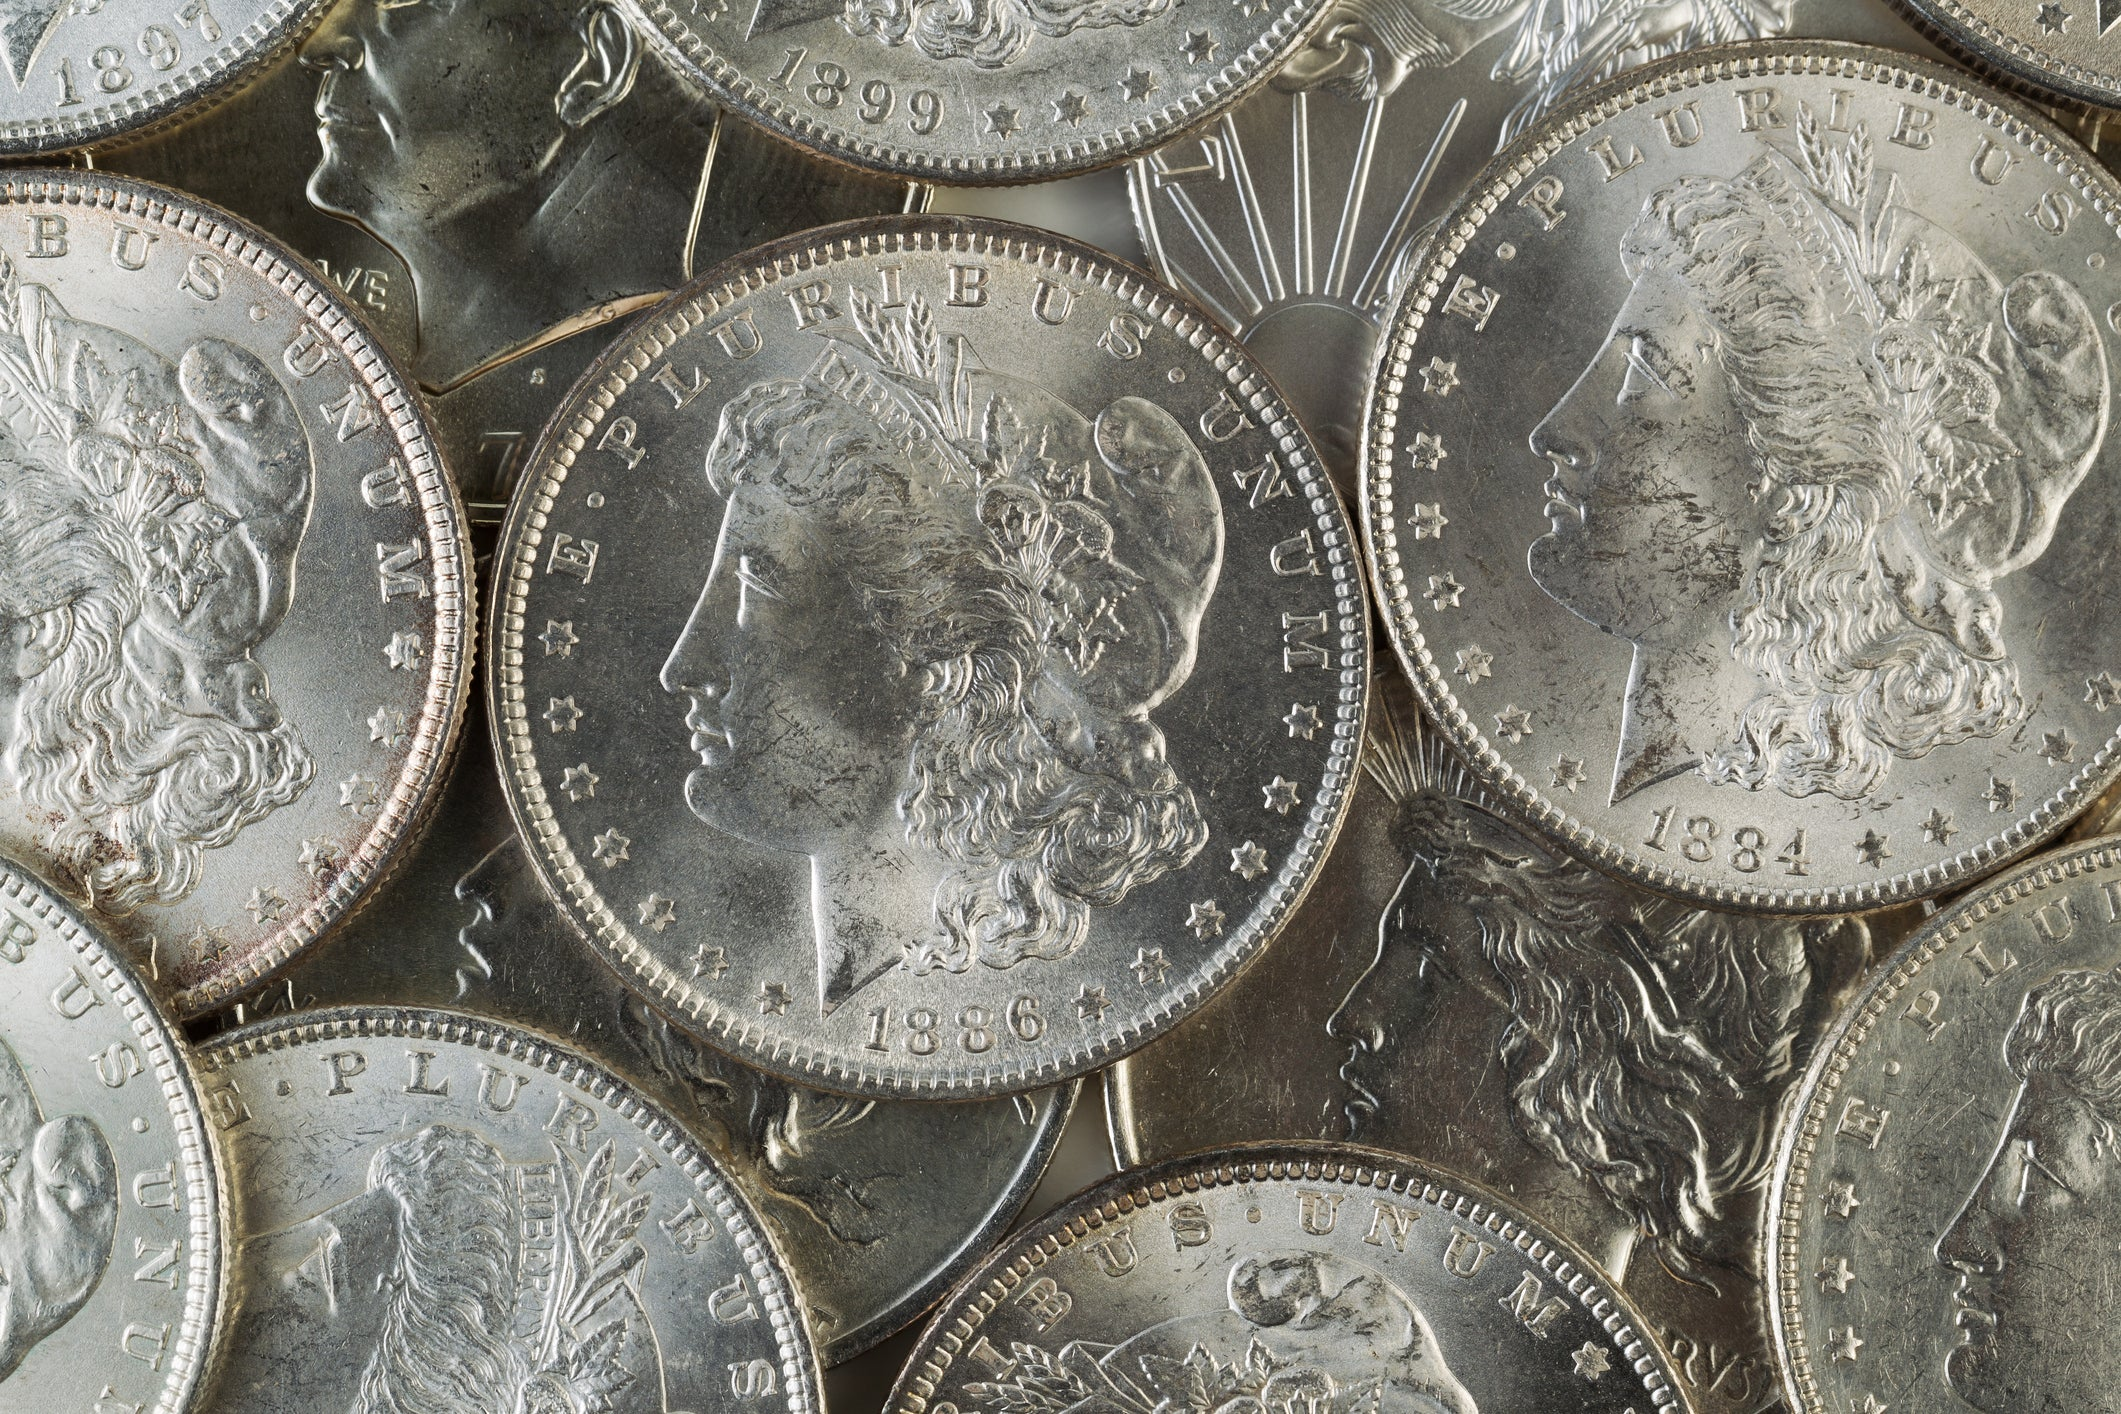 What Is a Silver Certificate Dollar Worth? | The Motley Fool